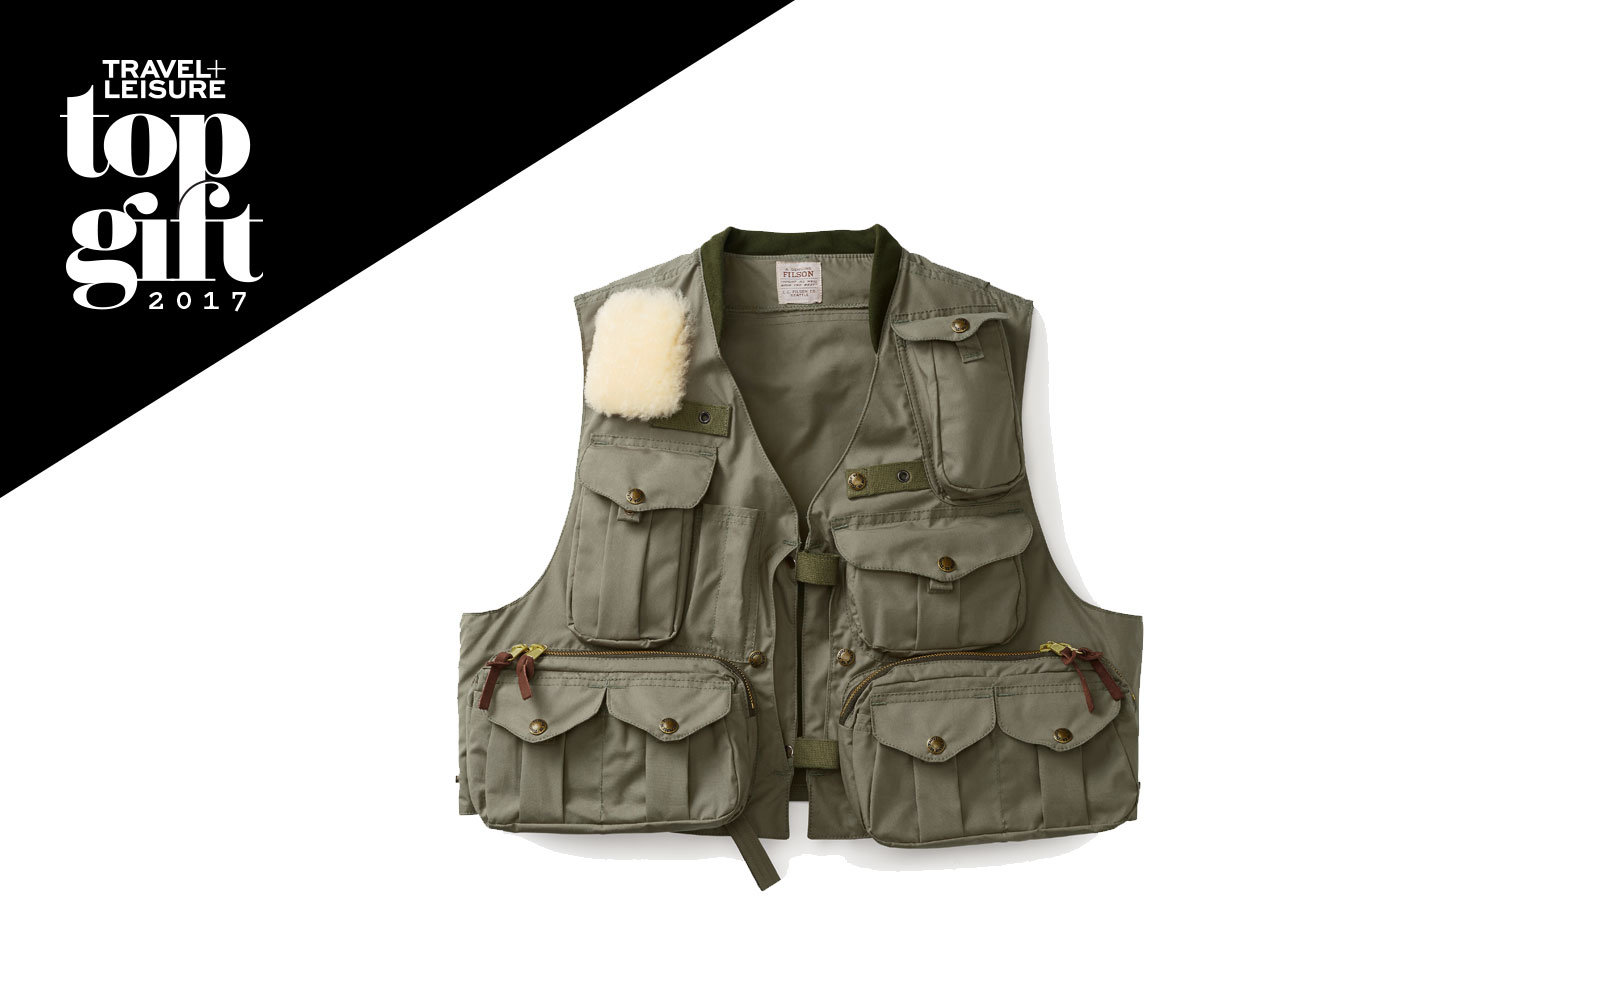 Filson fishing vest